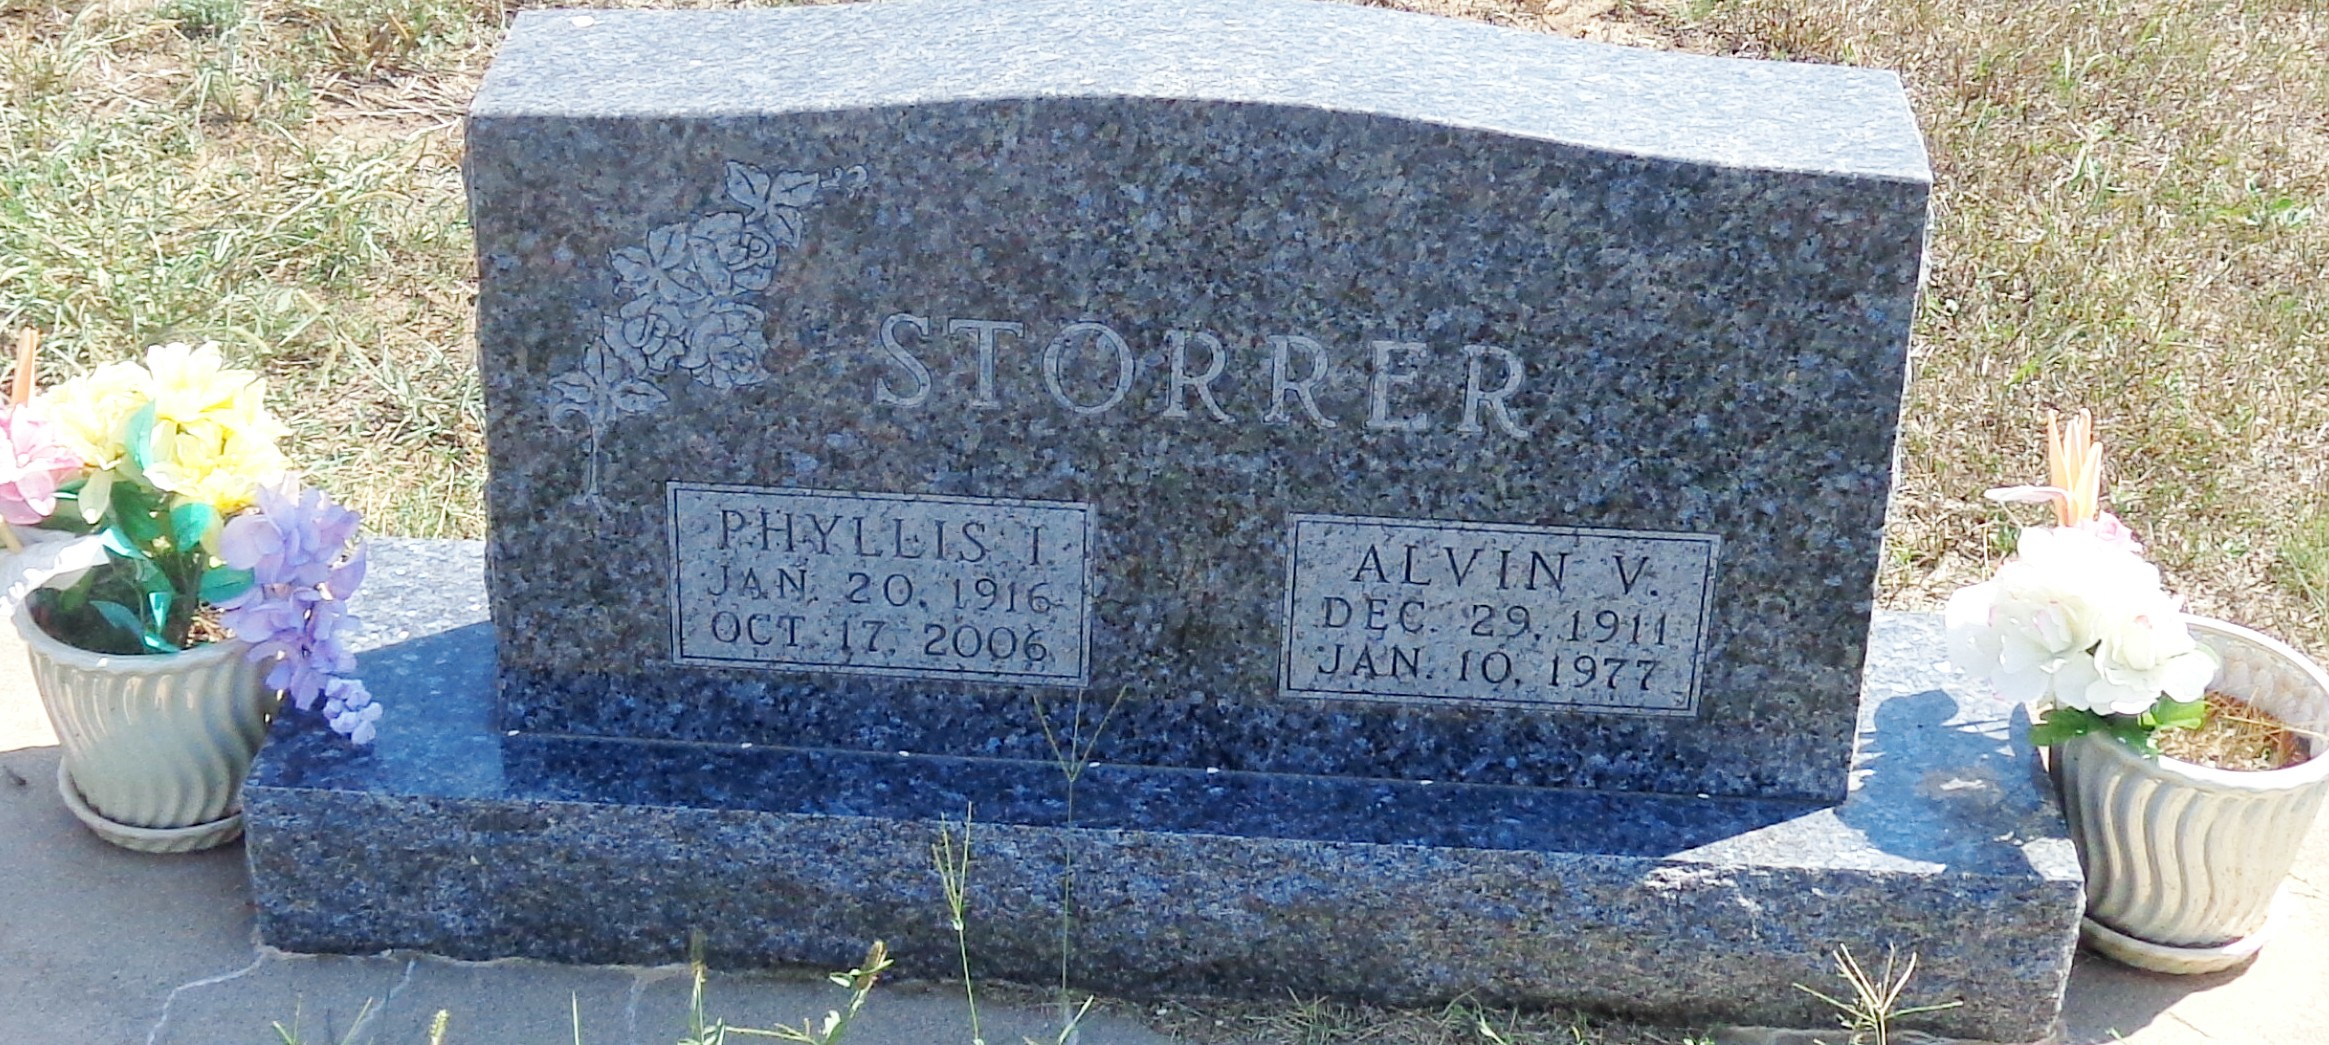 descendants of johannes bit htm phyllis married alvin v storrer scrapbook son of fred a storrer and lydia on 26 feb 1936 in wichita sedgwick co ks alvin was born about 1912 in ks